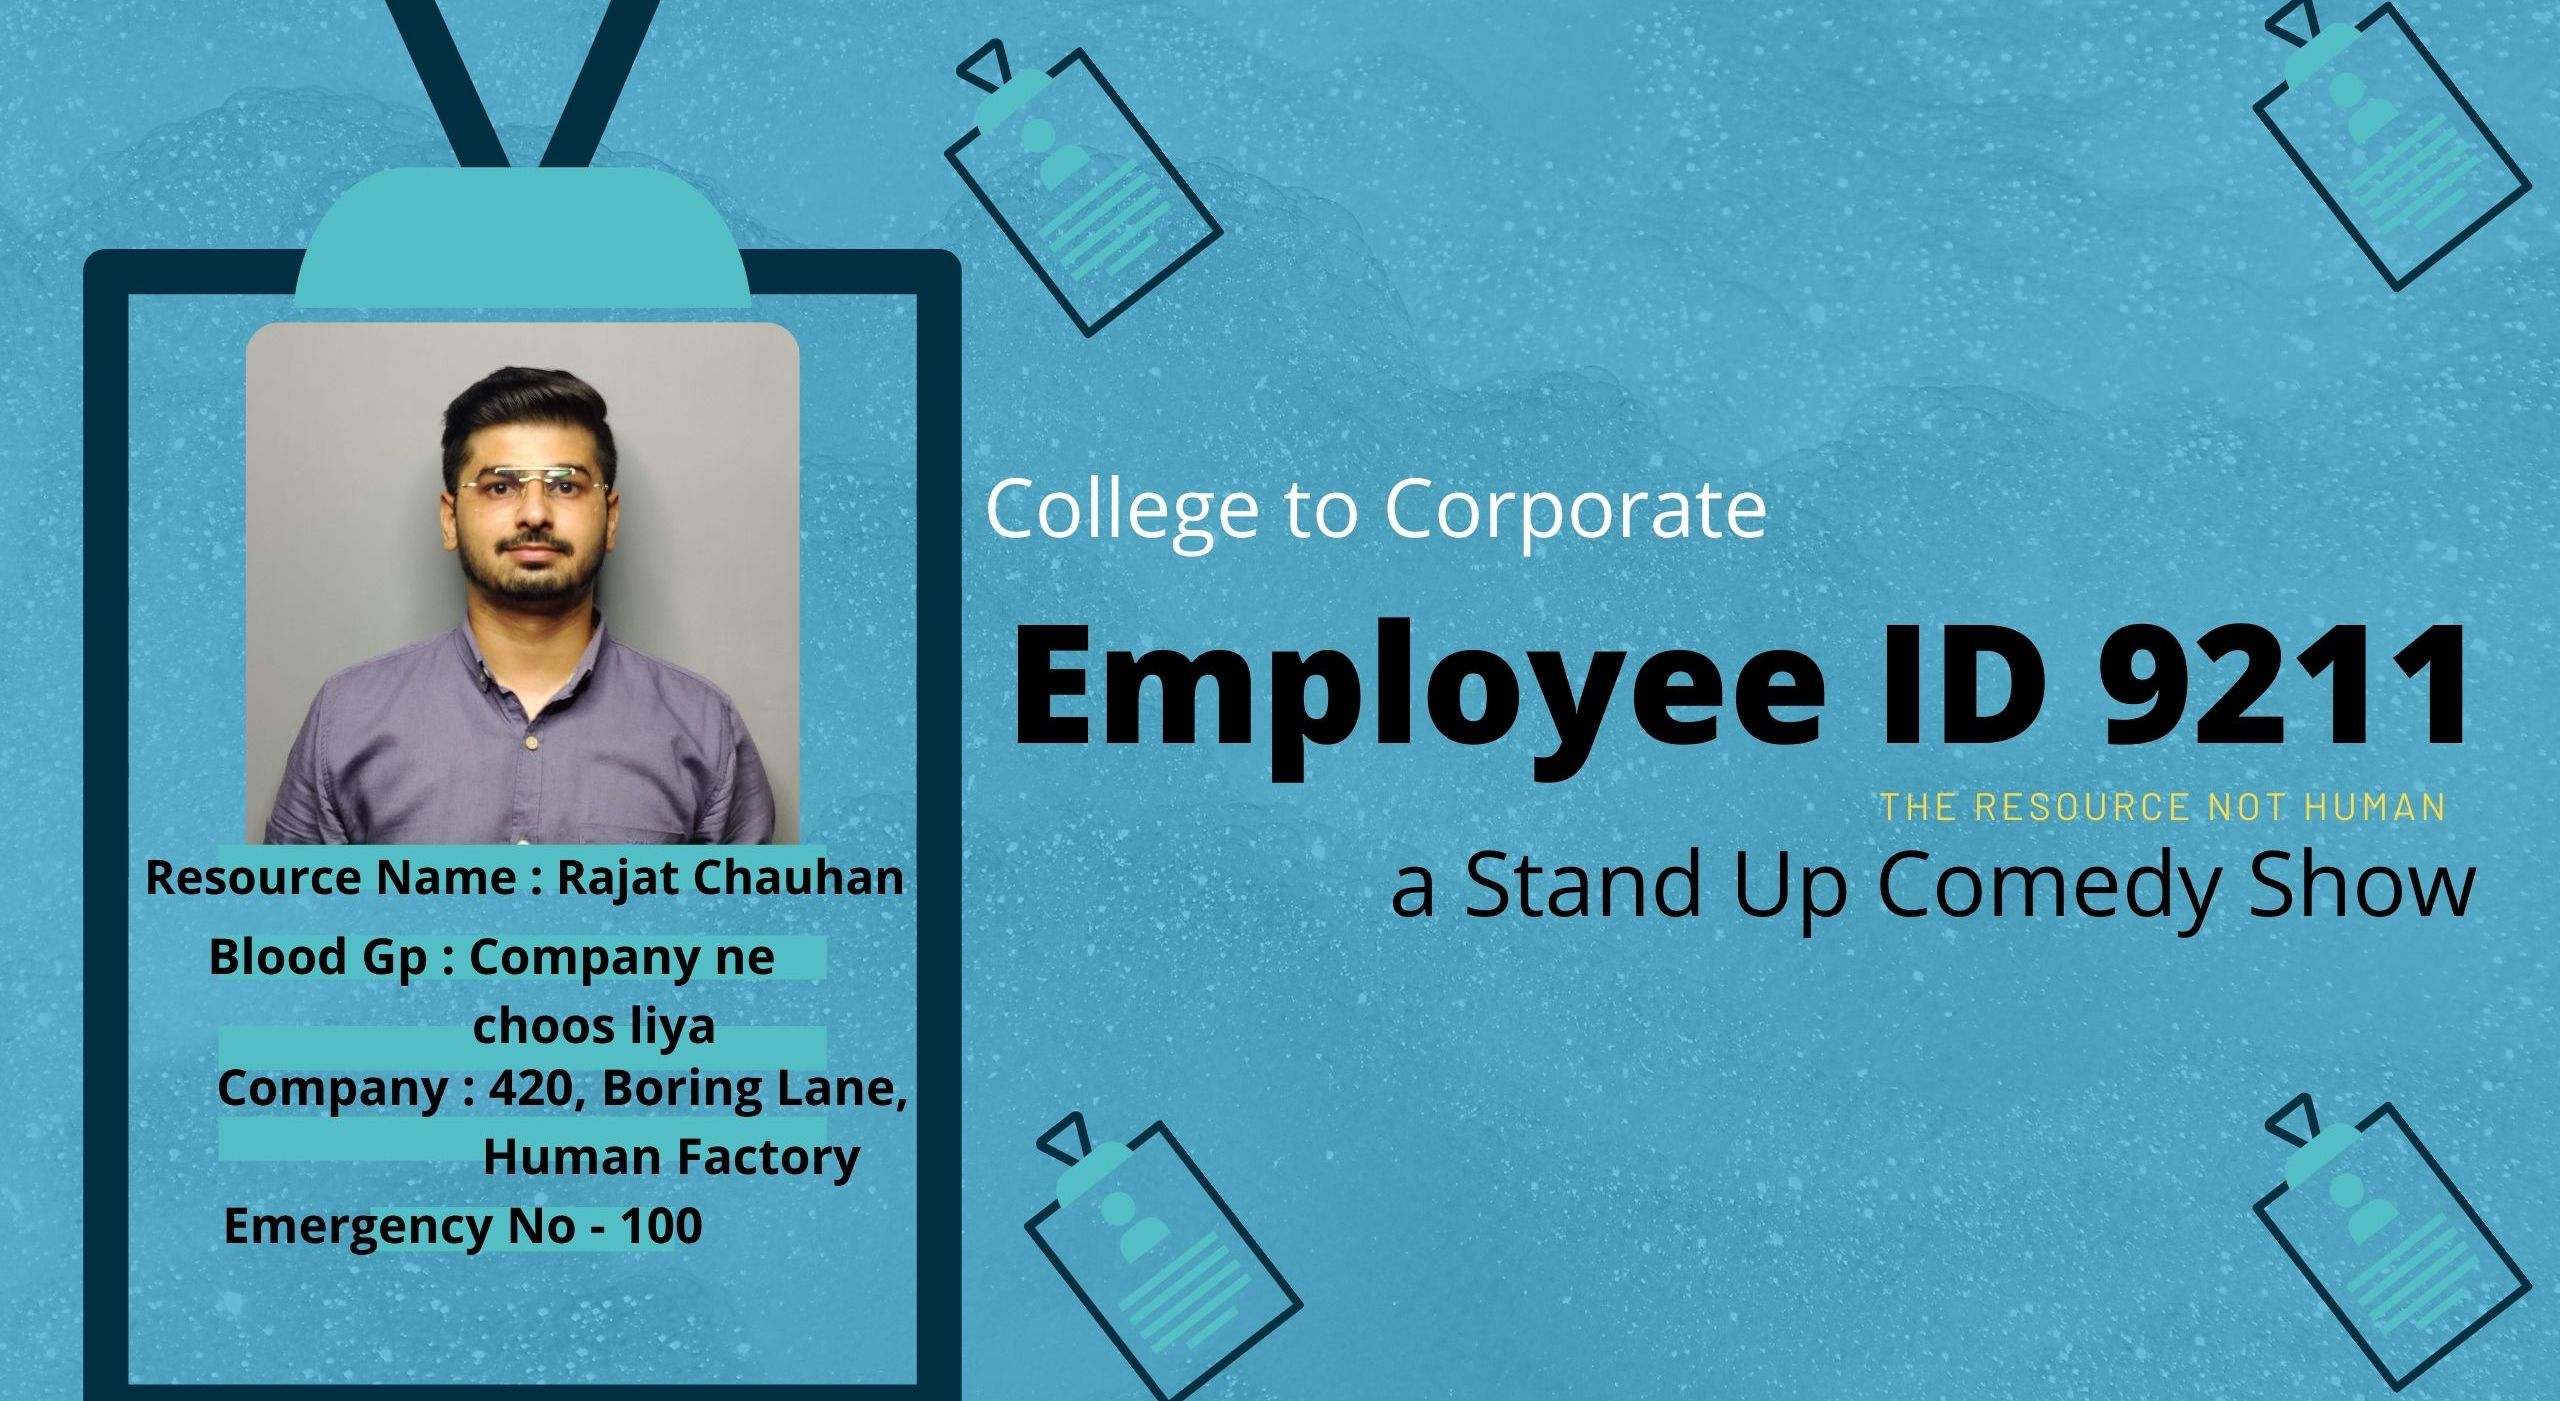 Employee Id no 9211 a Stand Up Comedy